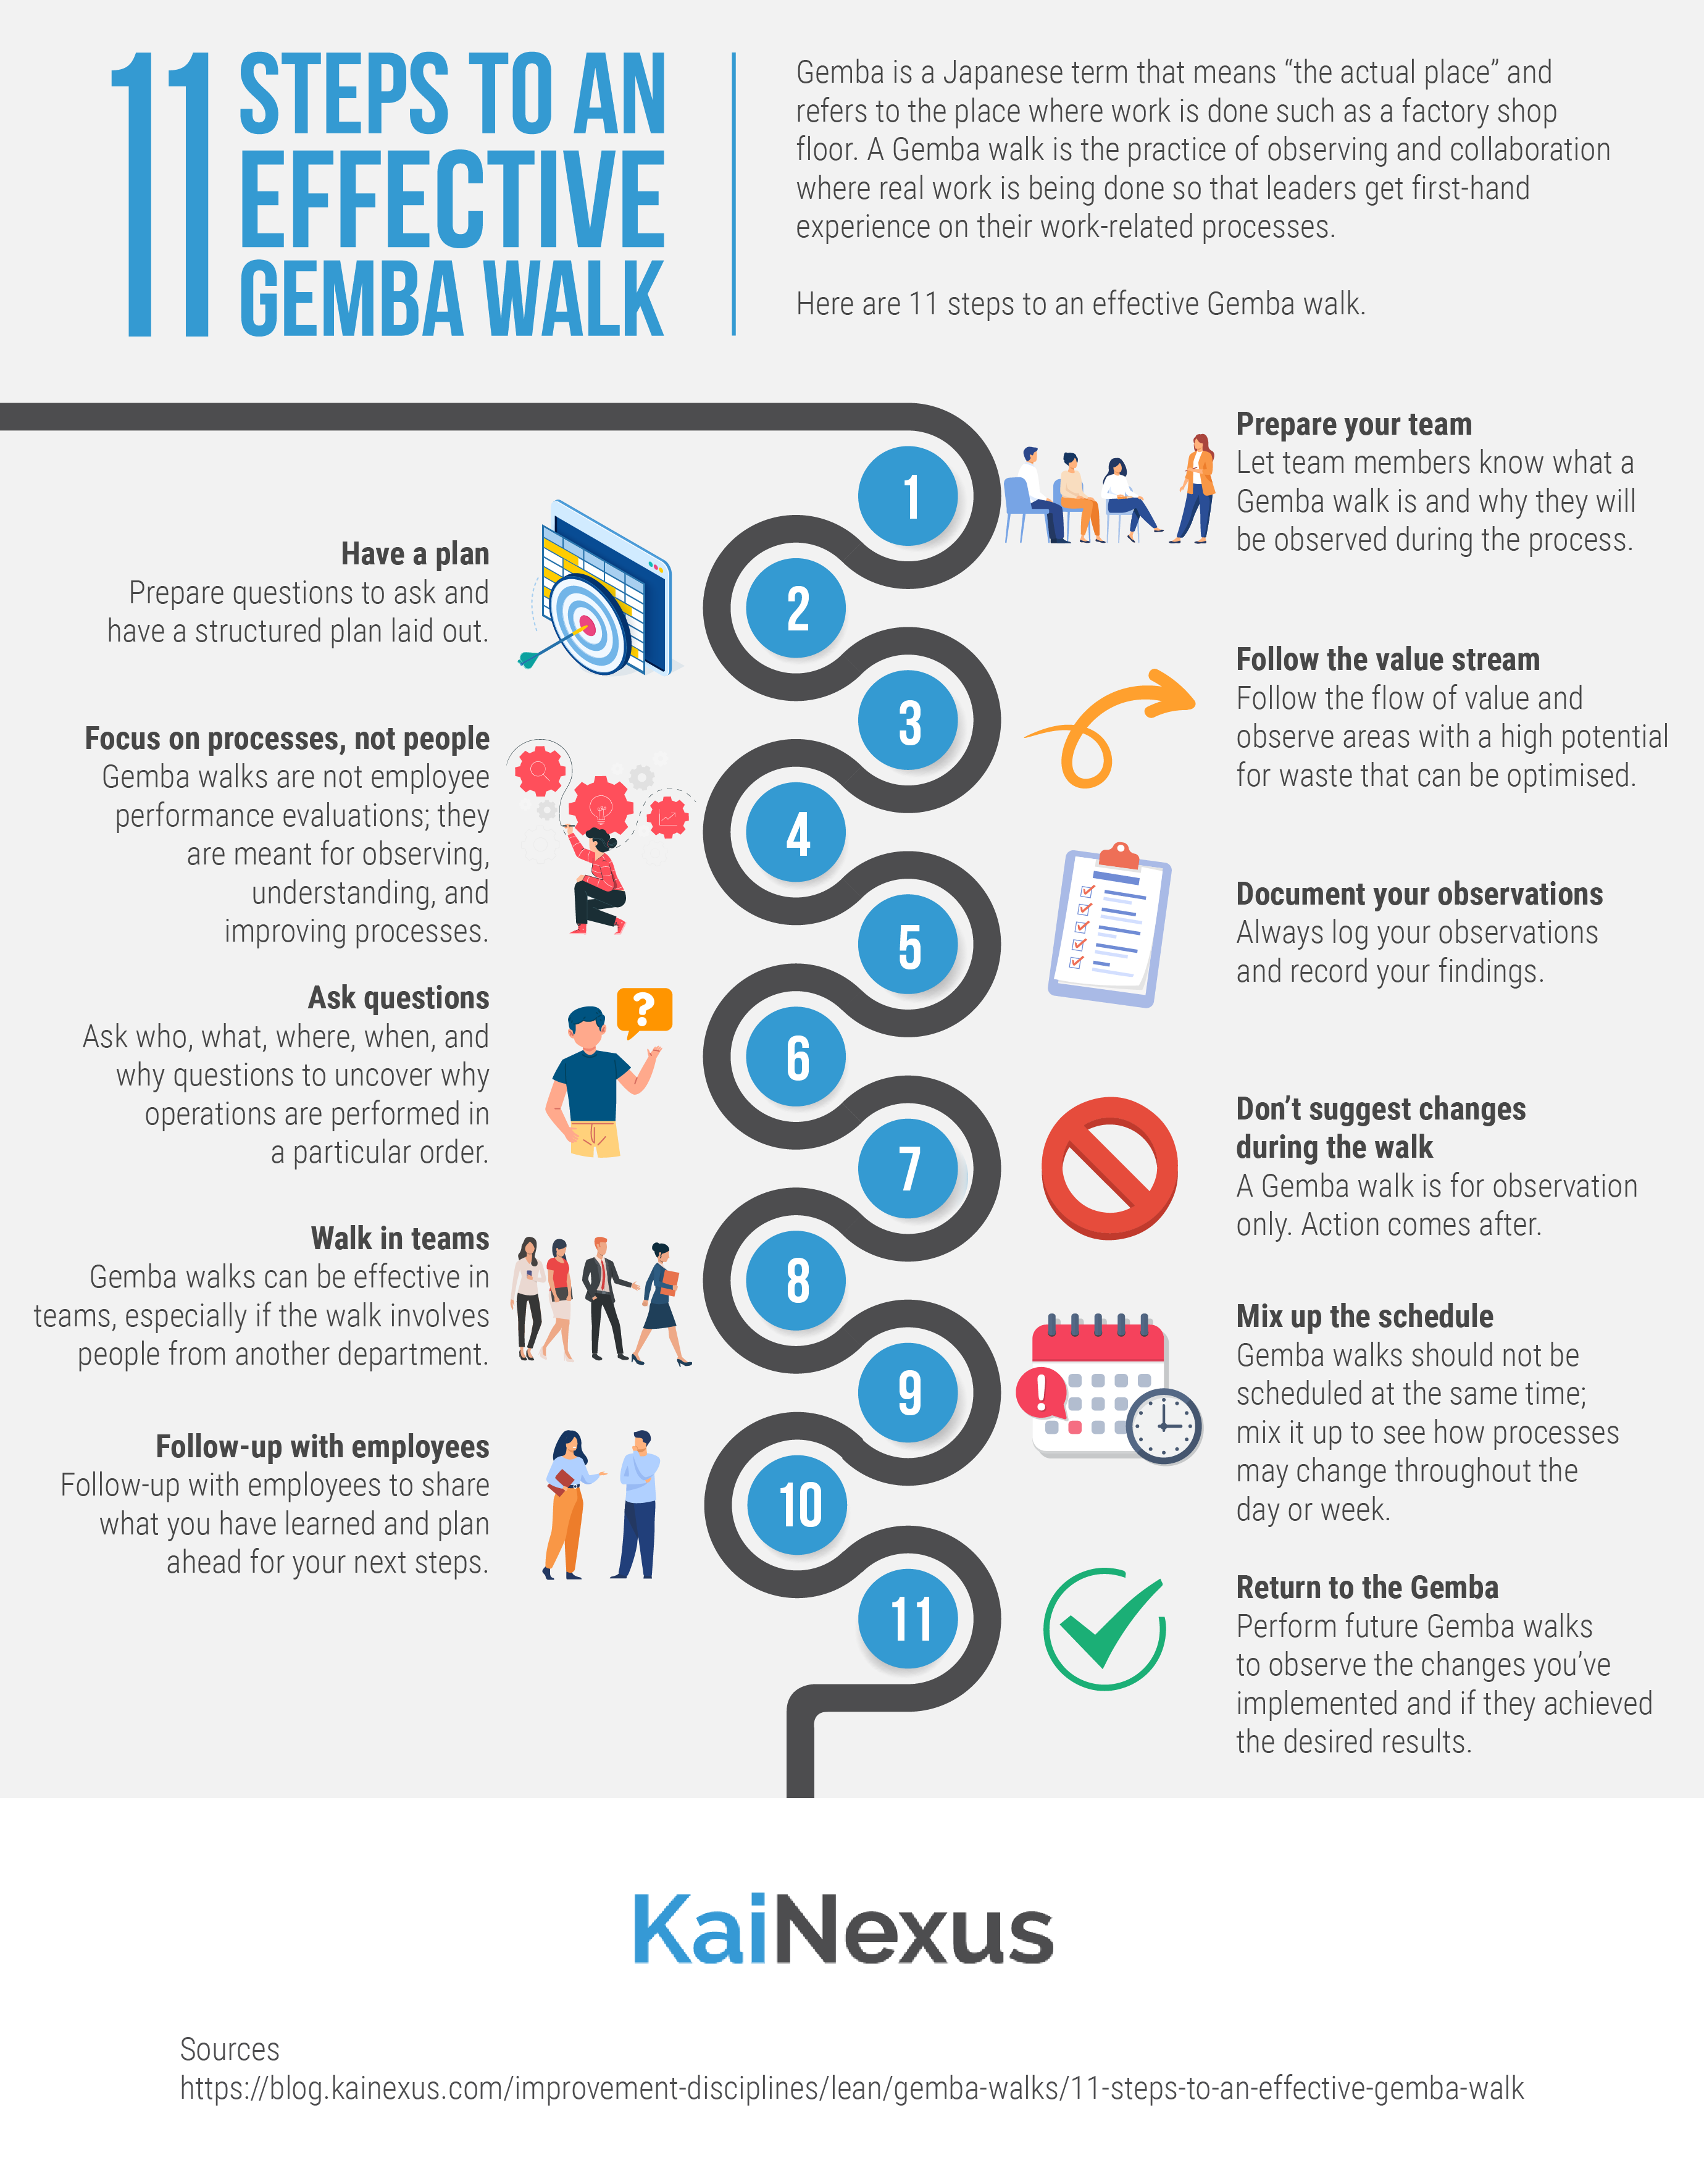 11 Steps to an Effective Gemba Walk Infographic